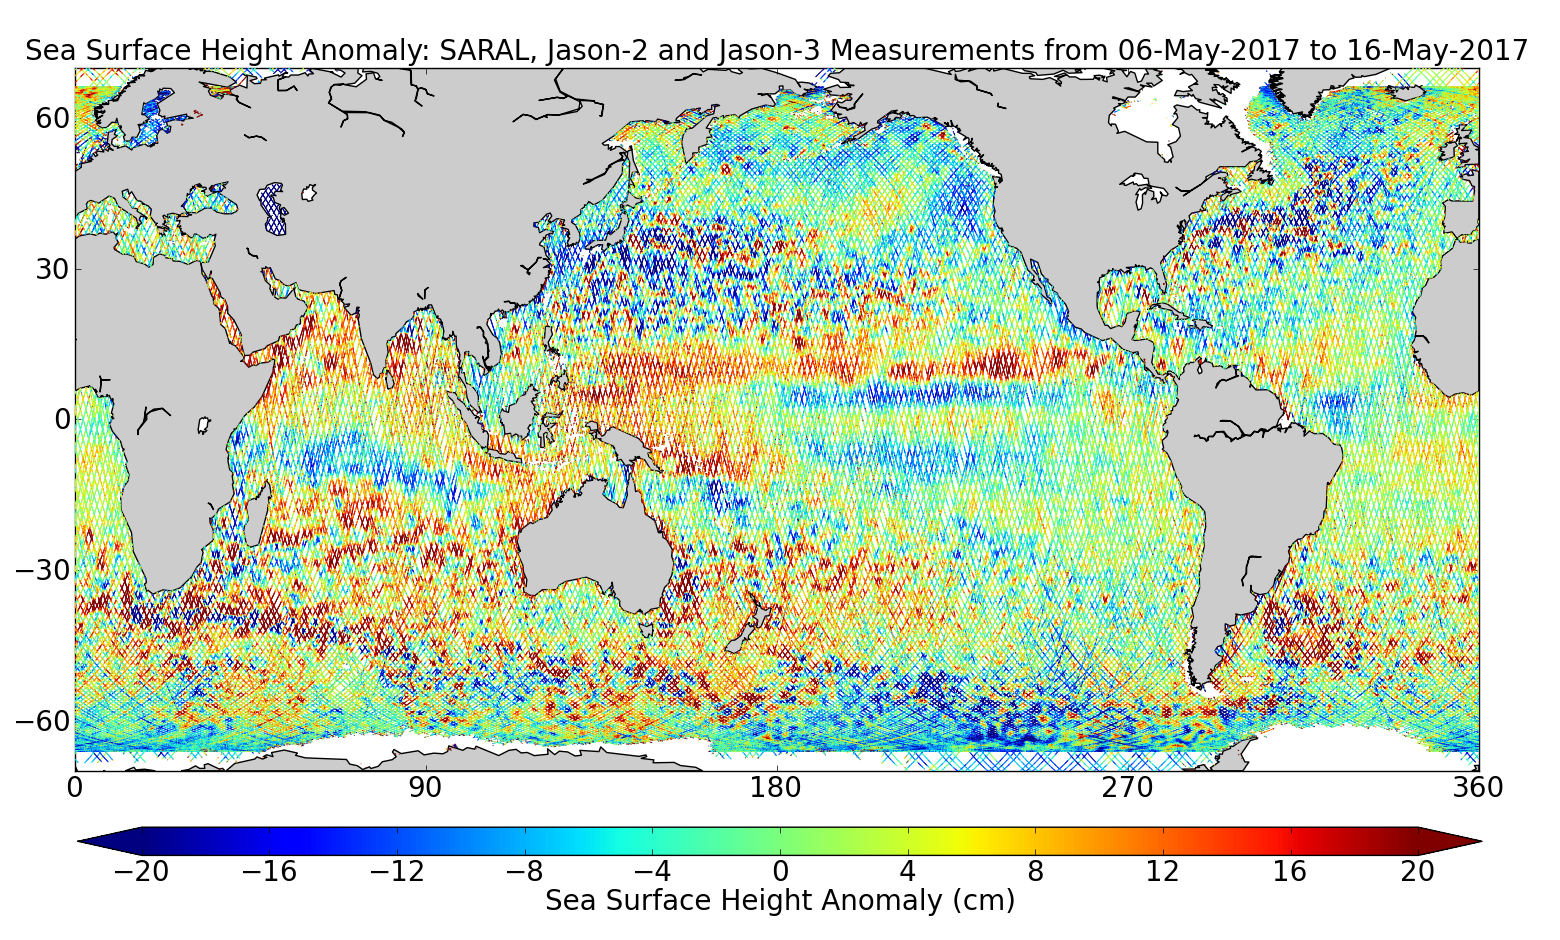 Sea Surface Height Anomaly: SARAL, Jason-2 and Jason-3 Measurements from 06-May-2017 to 16-May-2017